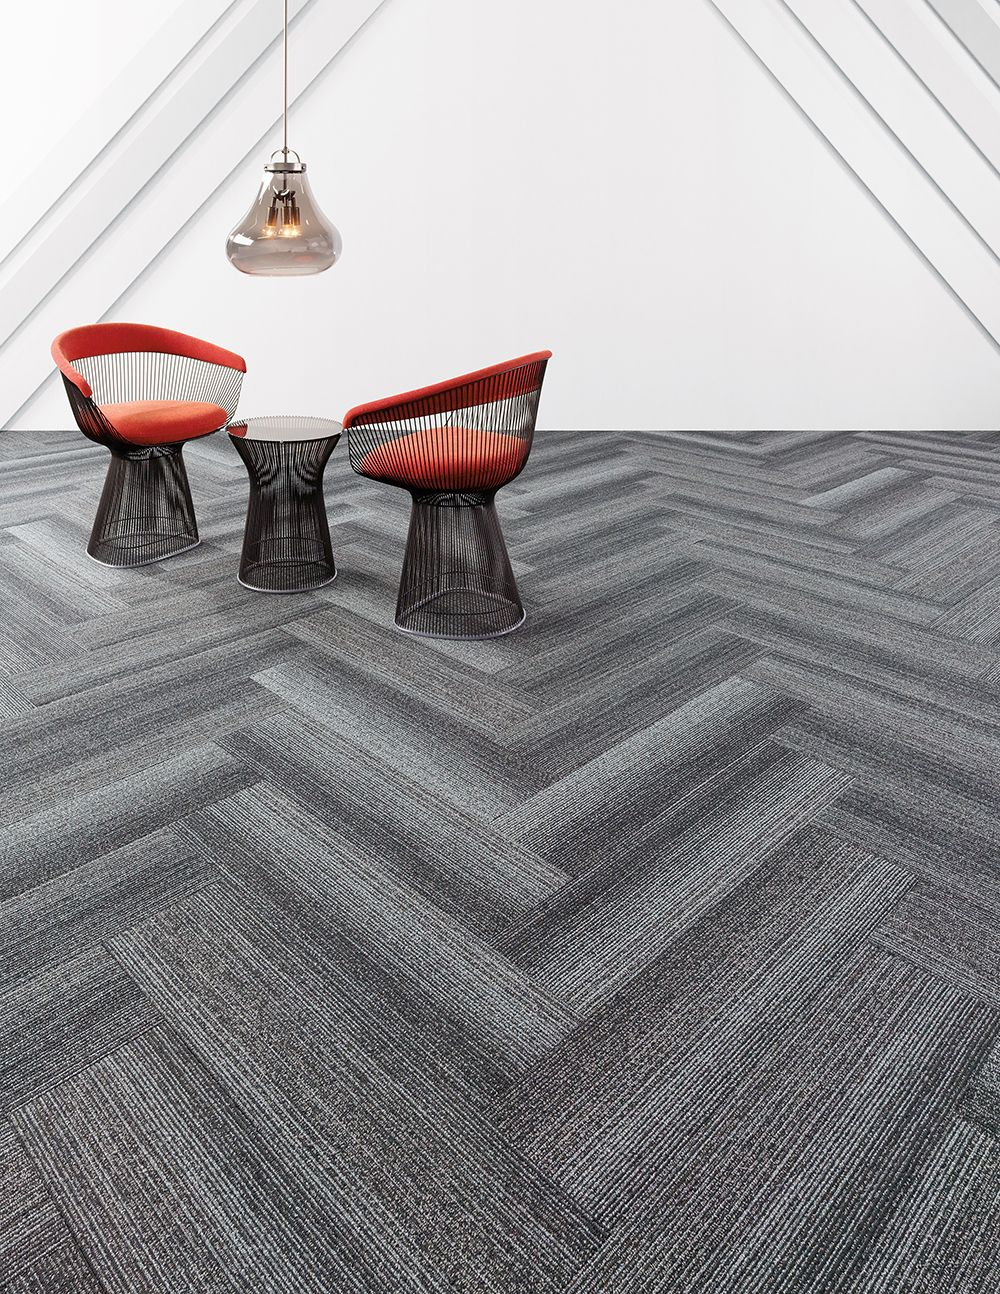 Saturate Carpet Tile Subtly Mixes And Merges On The Floor In A Svelte 23 X 92 Cm Plank Available In 15 Colours Office Carpet Rugs On Carpet Patterned Carpet